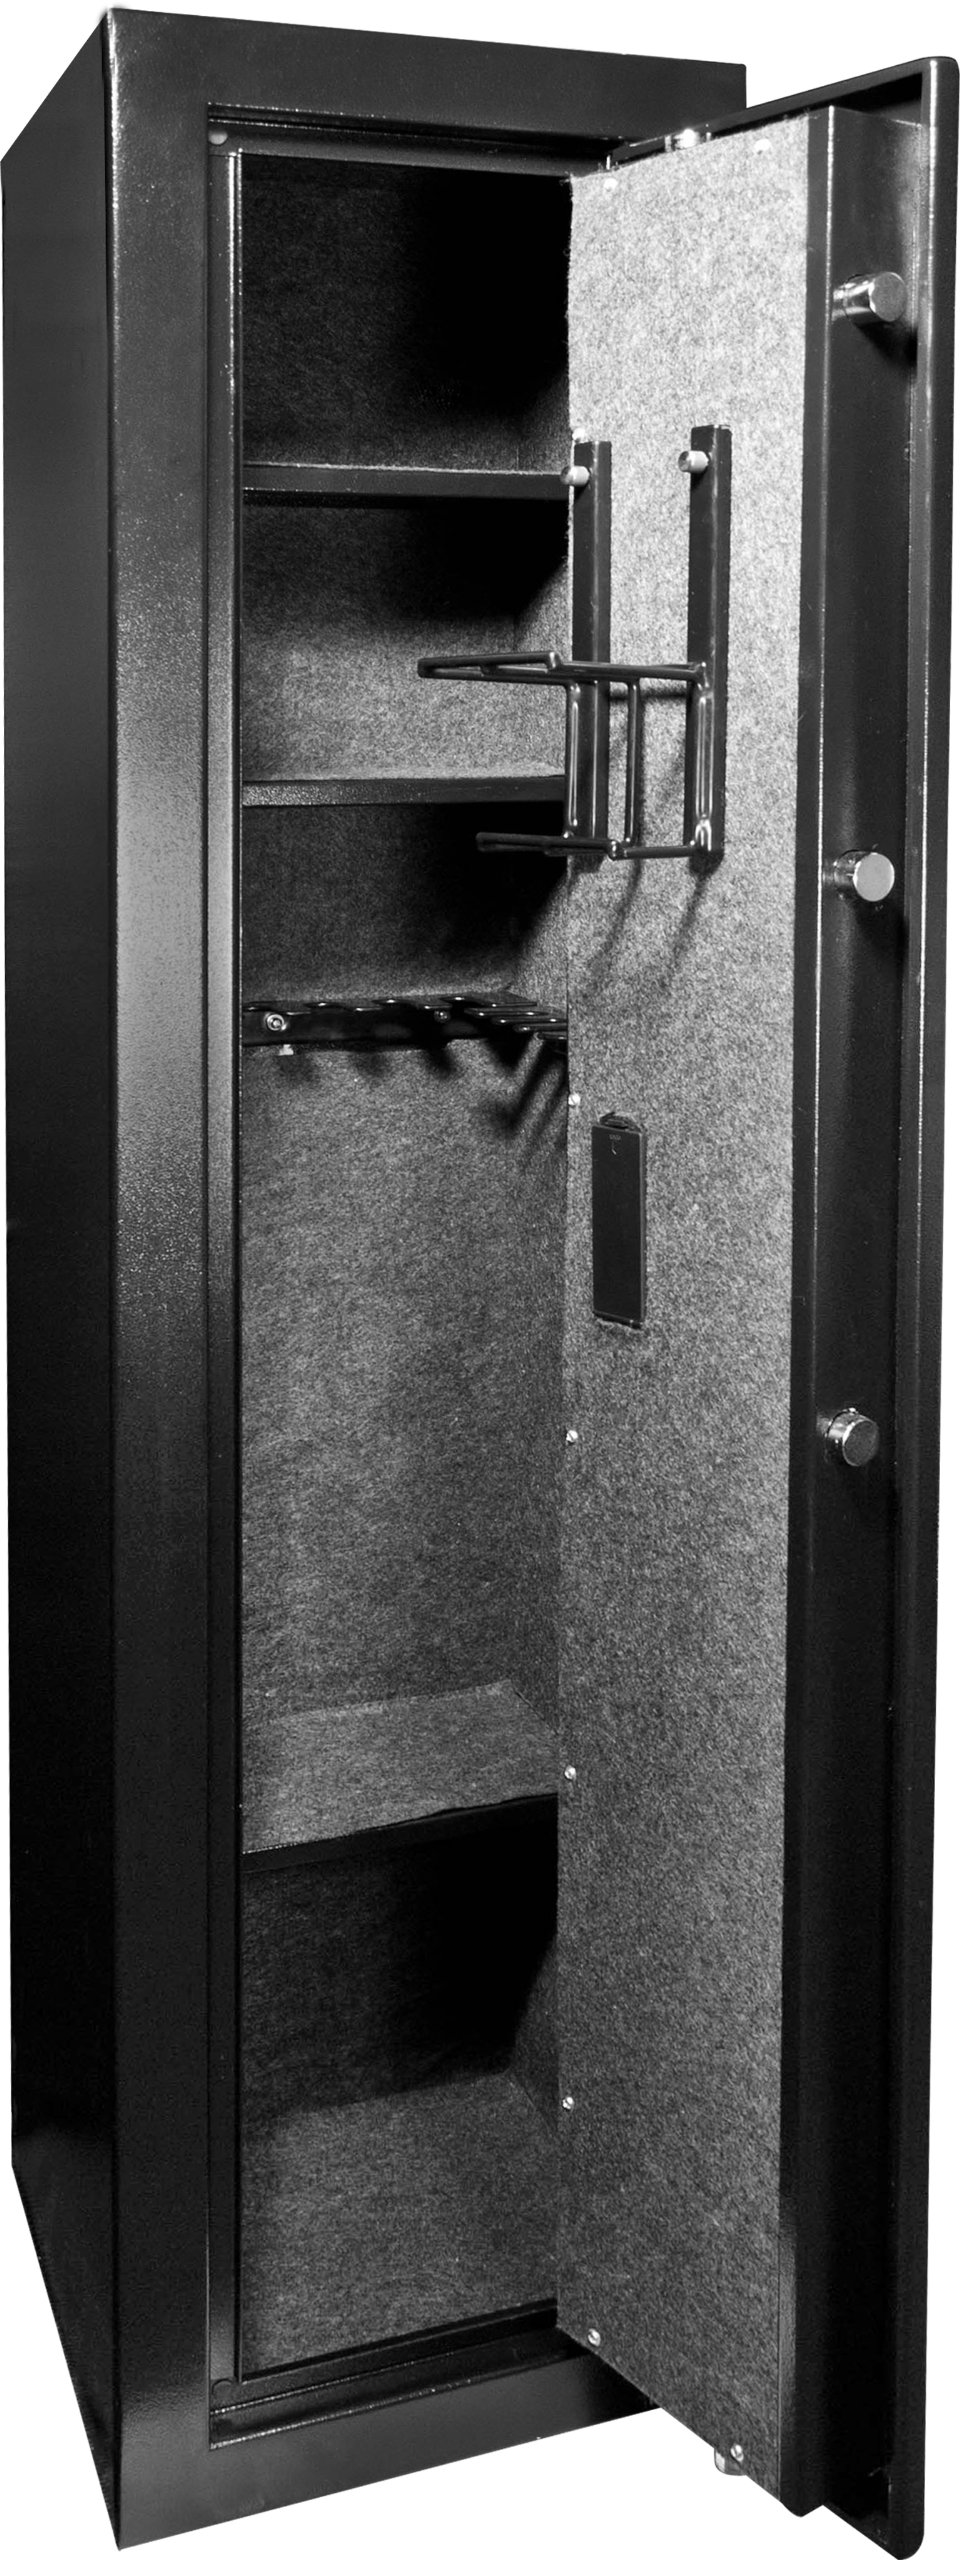 Barska Large Biometric Safe by BARSKA (Image #2)